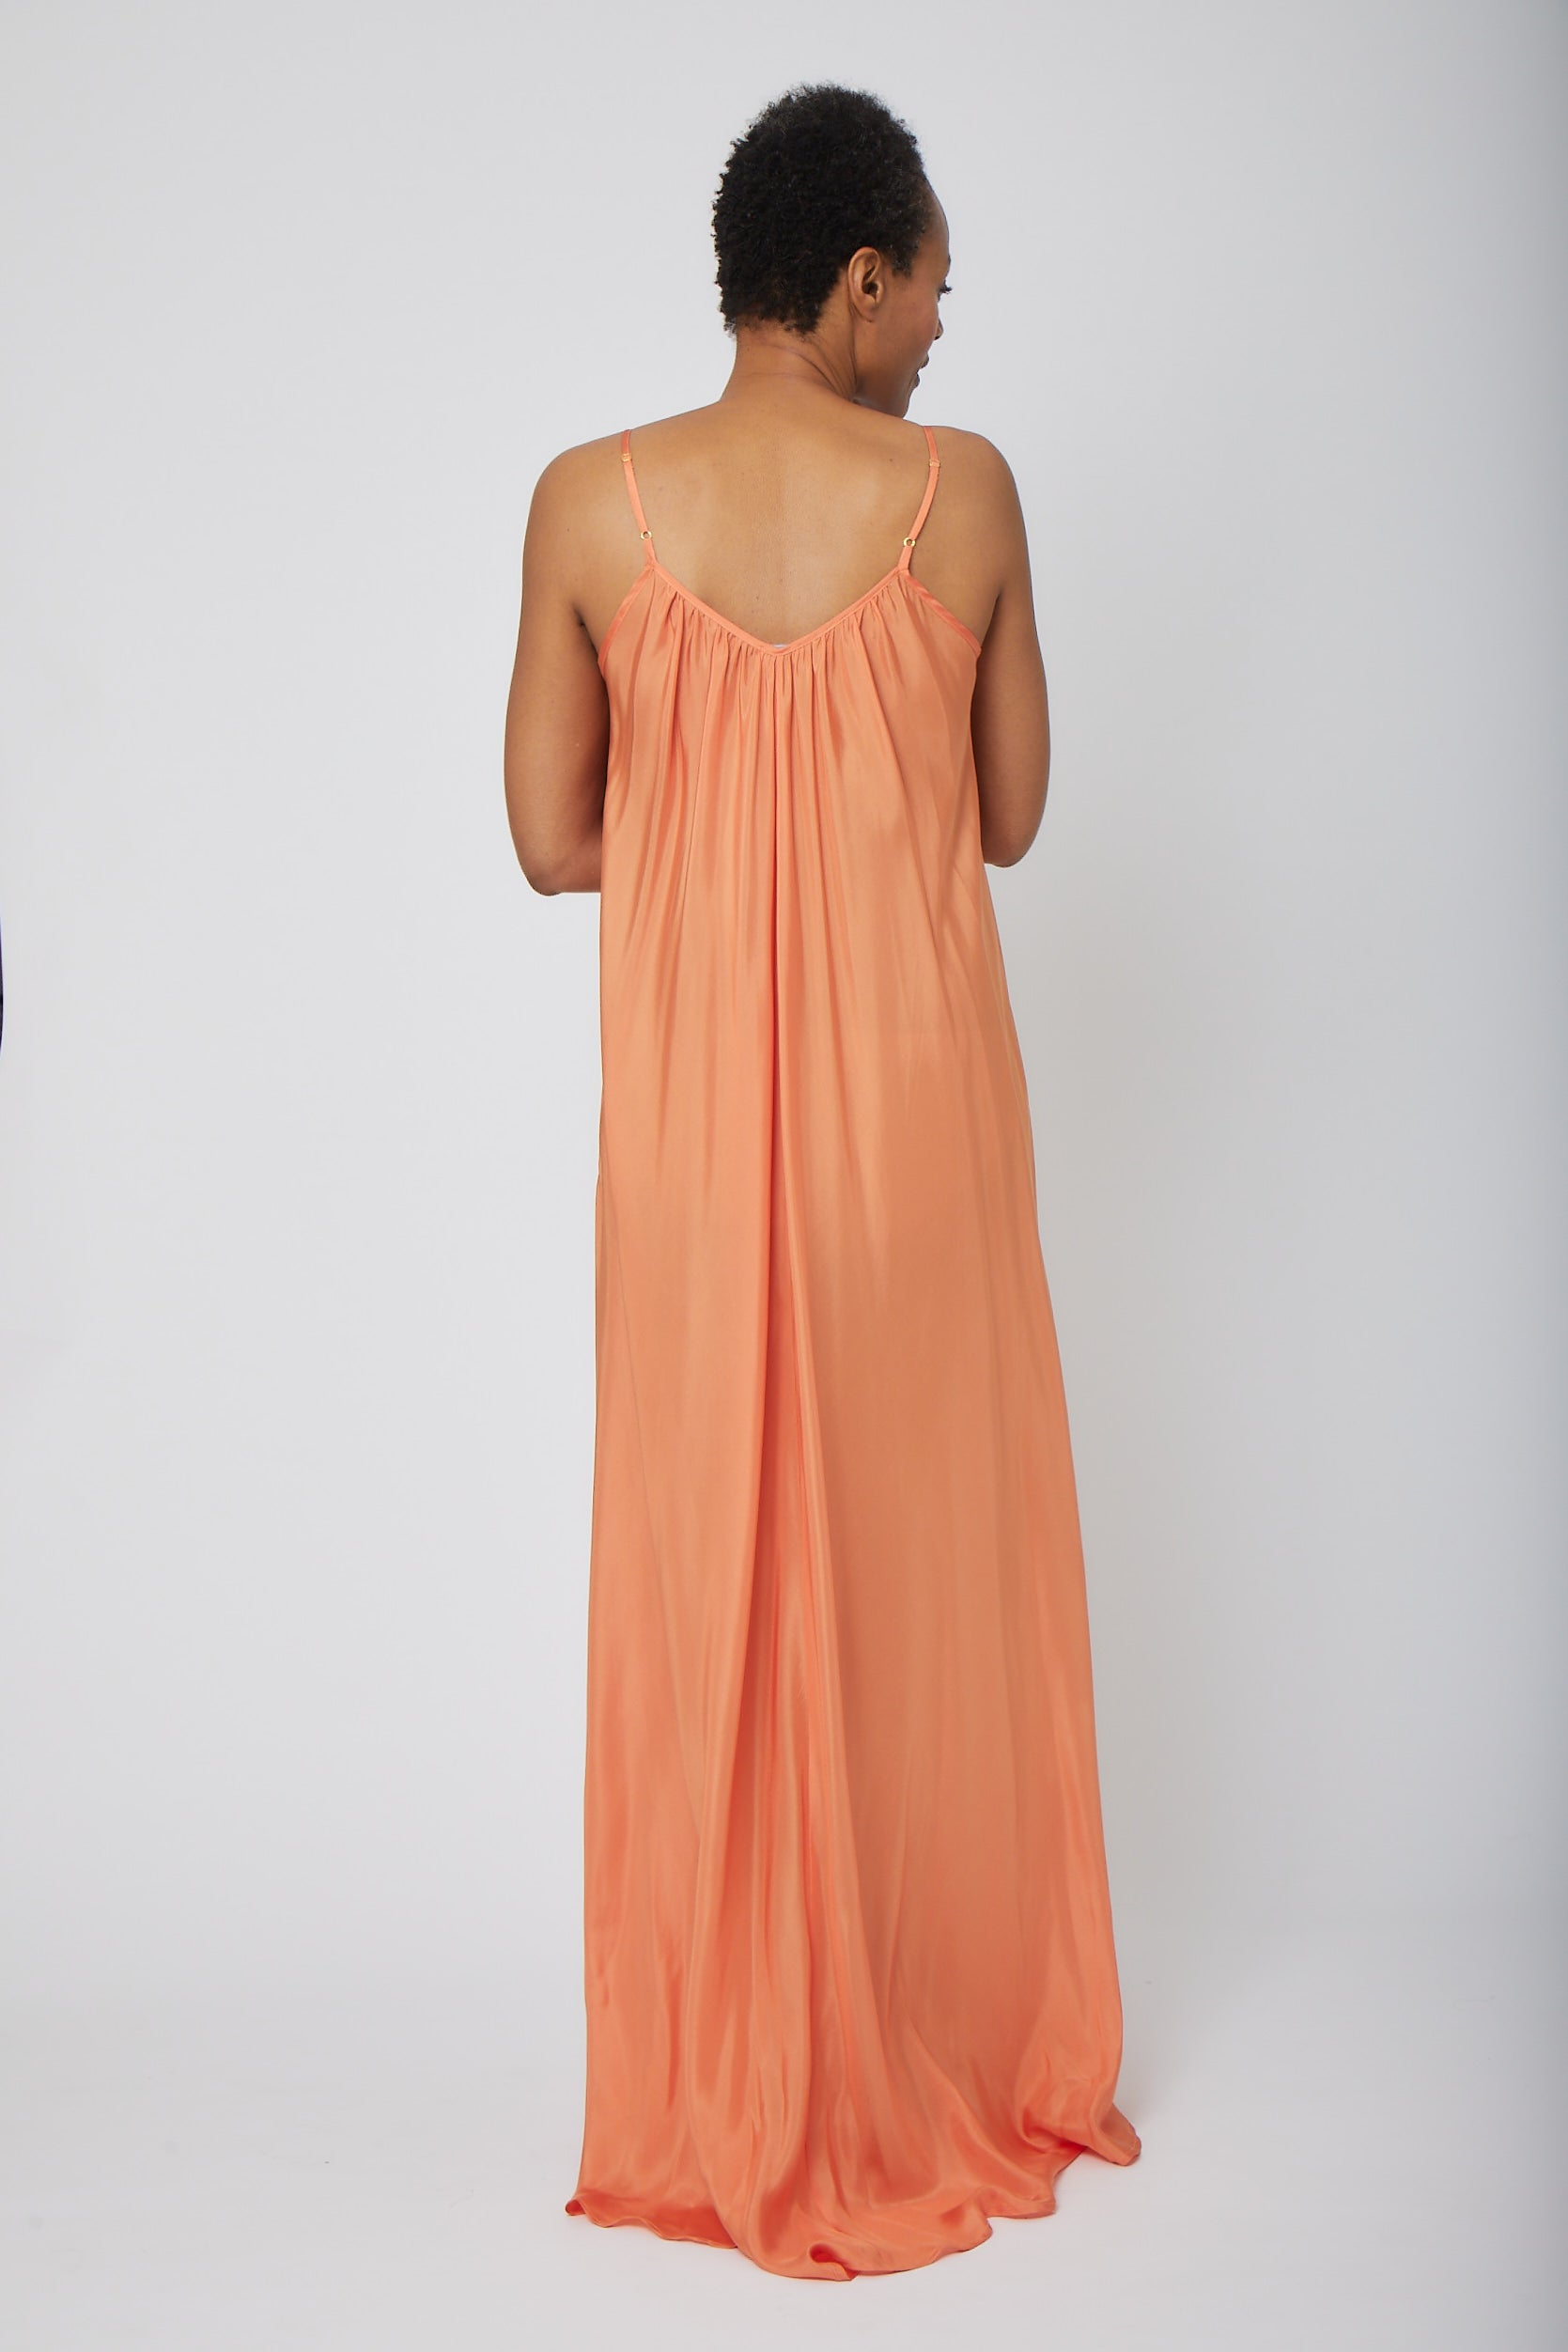 PLF_022620_24_PARIS_DRESS_TANGERINE_0560